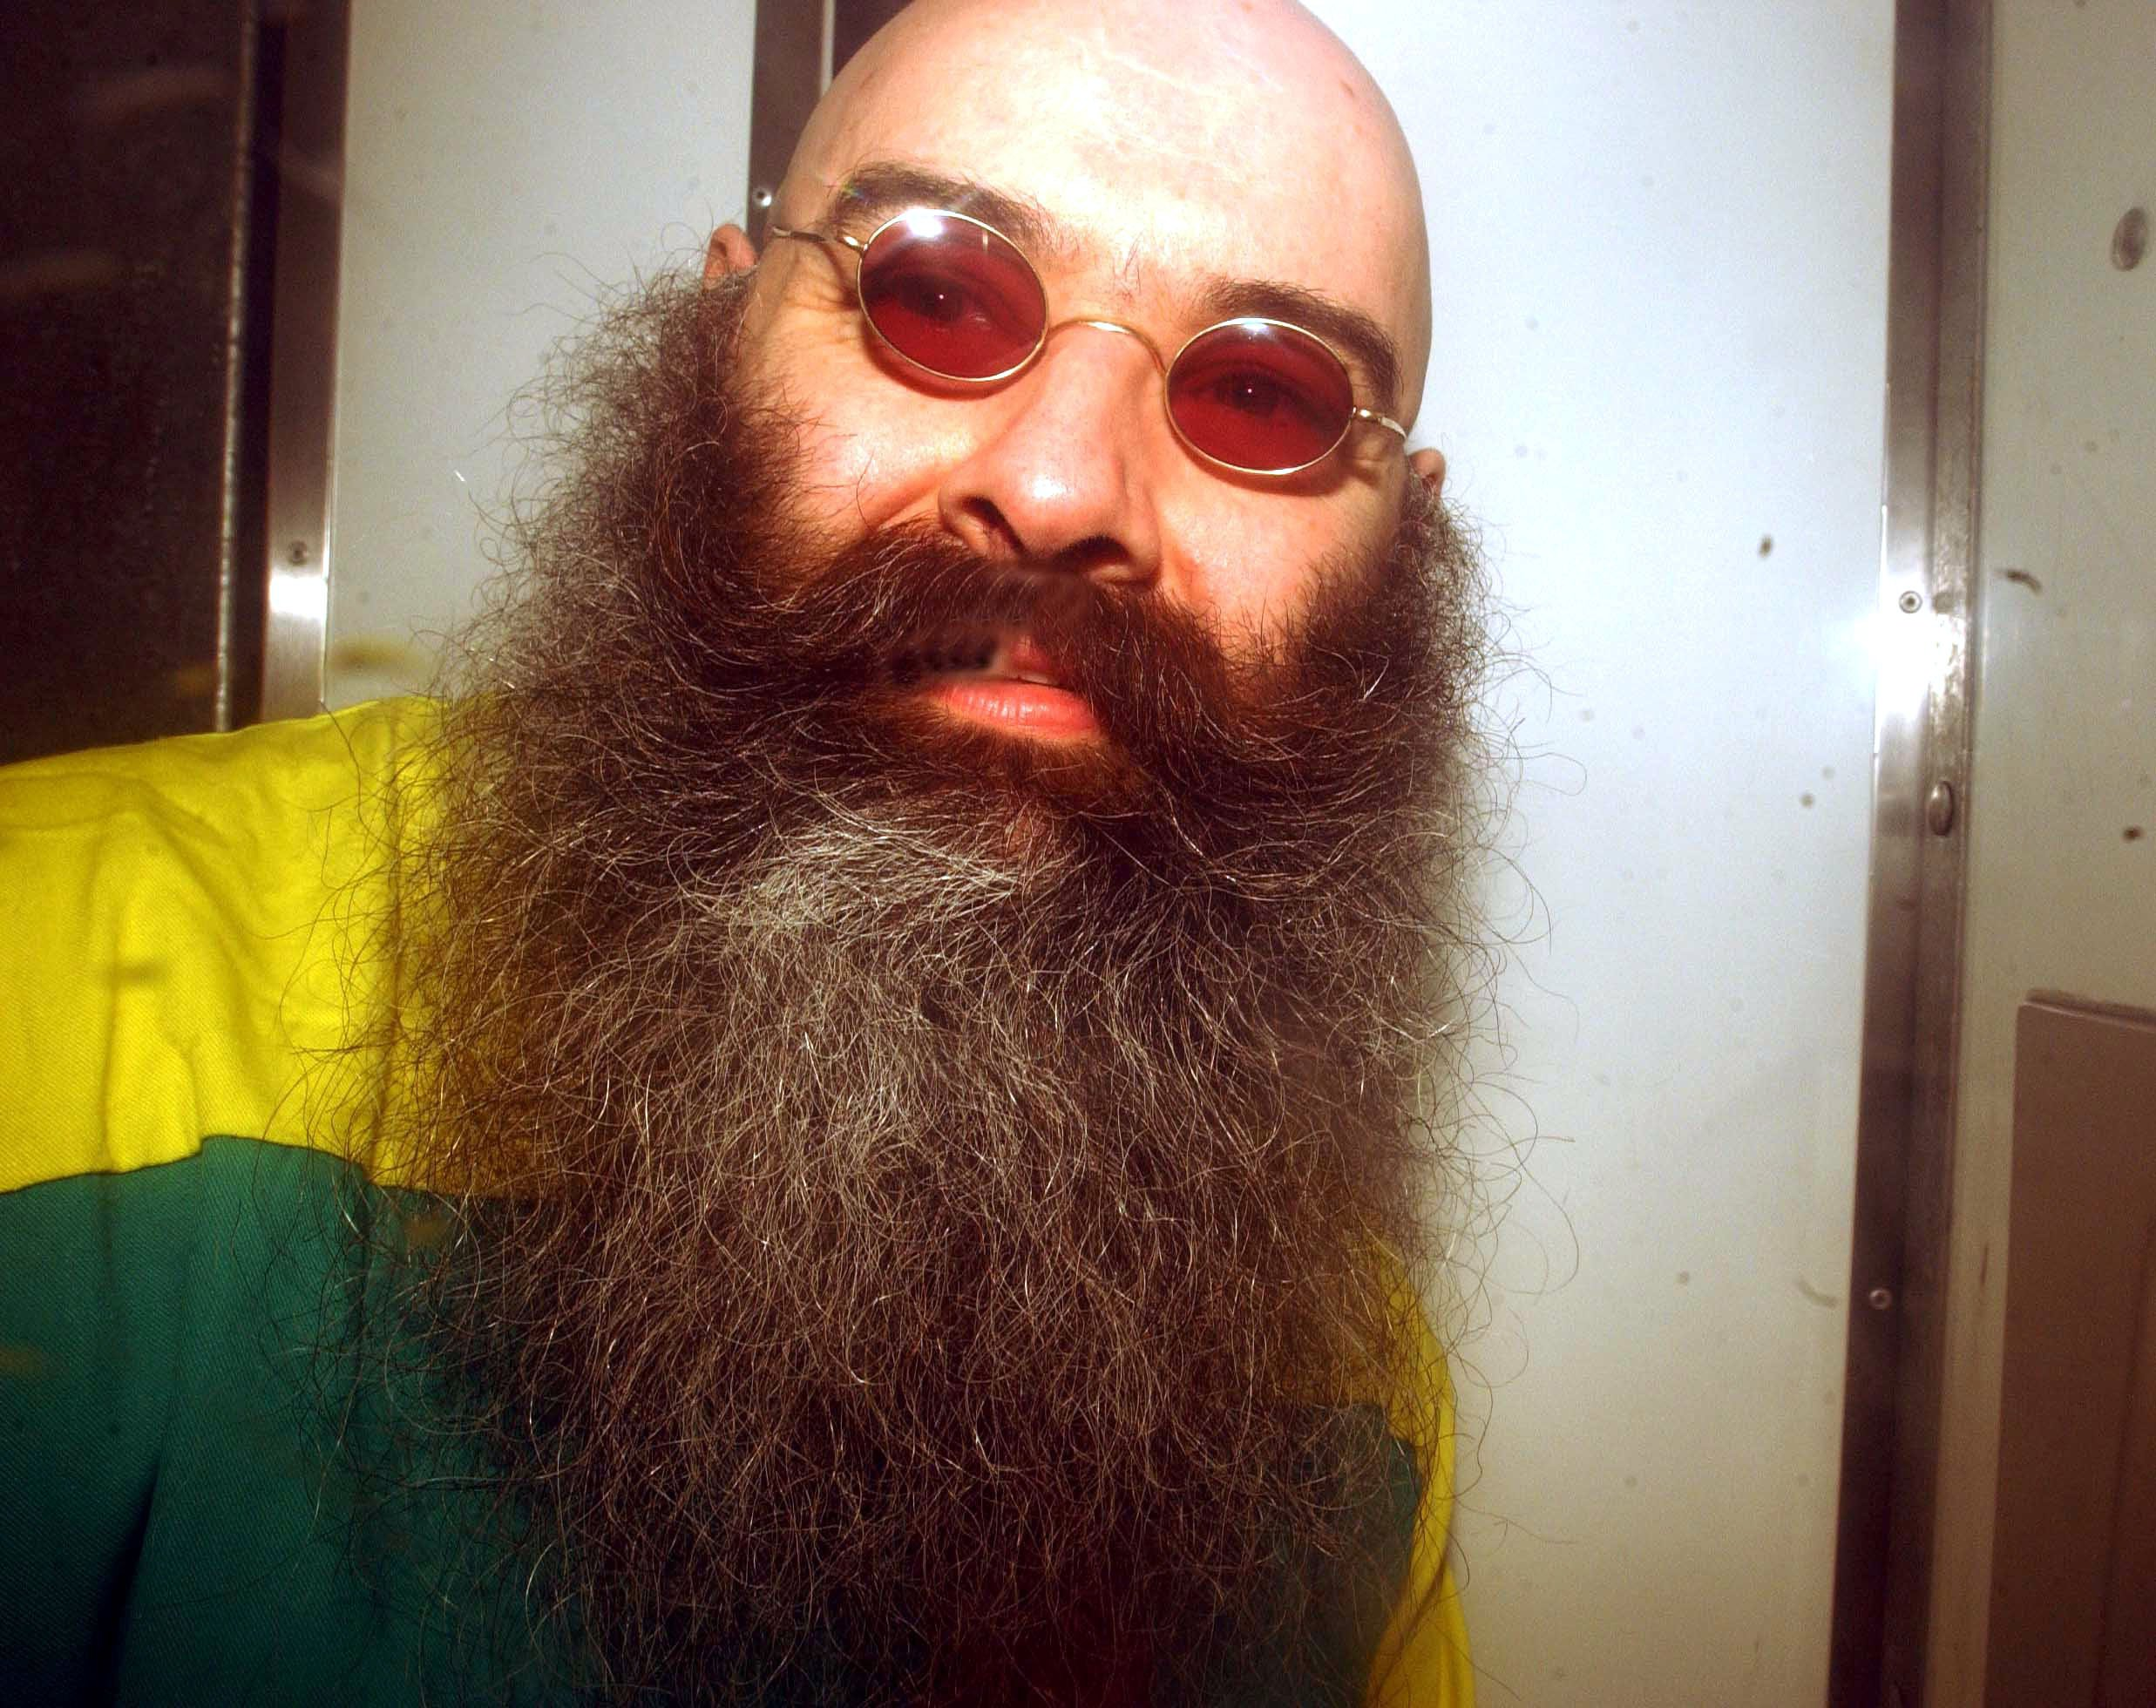 Infamous prisoner Charles Bronson says he could face more time behind bars